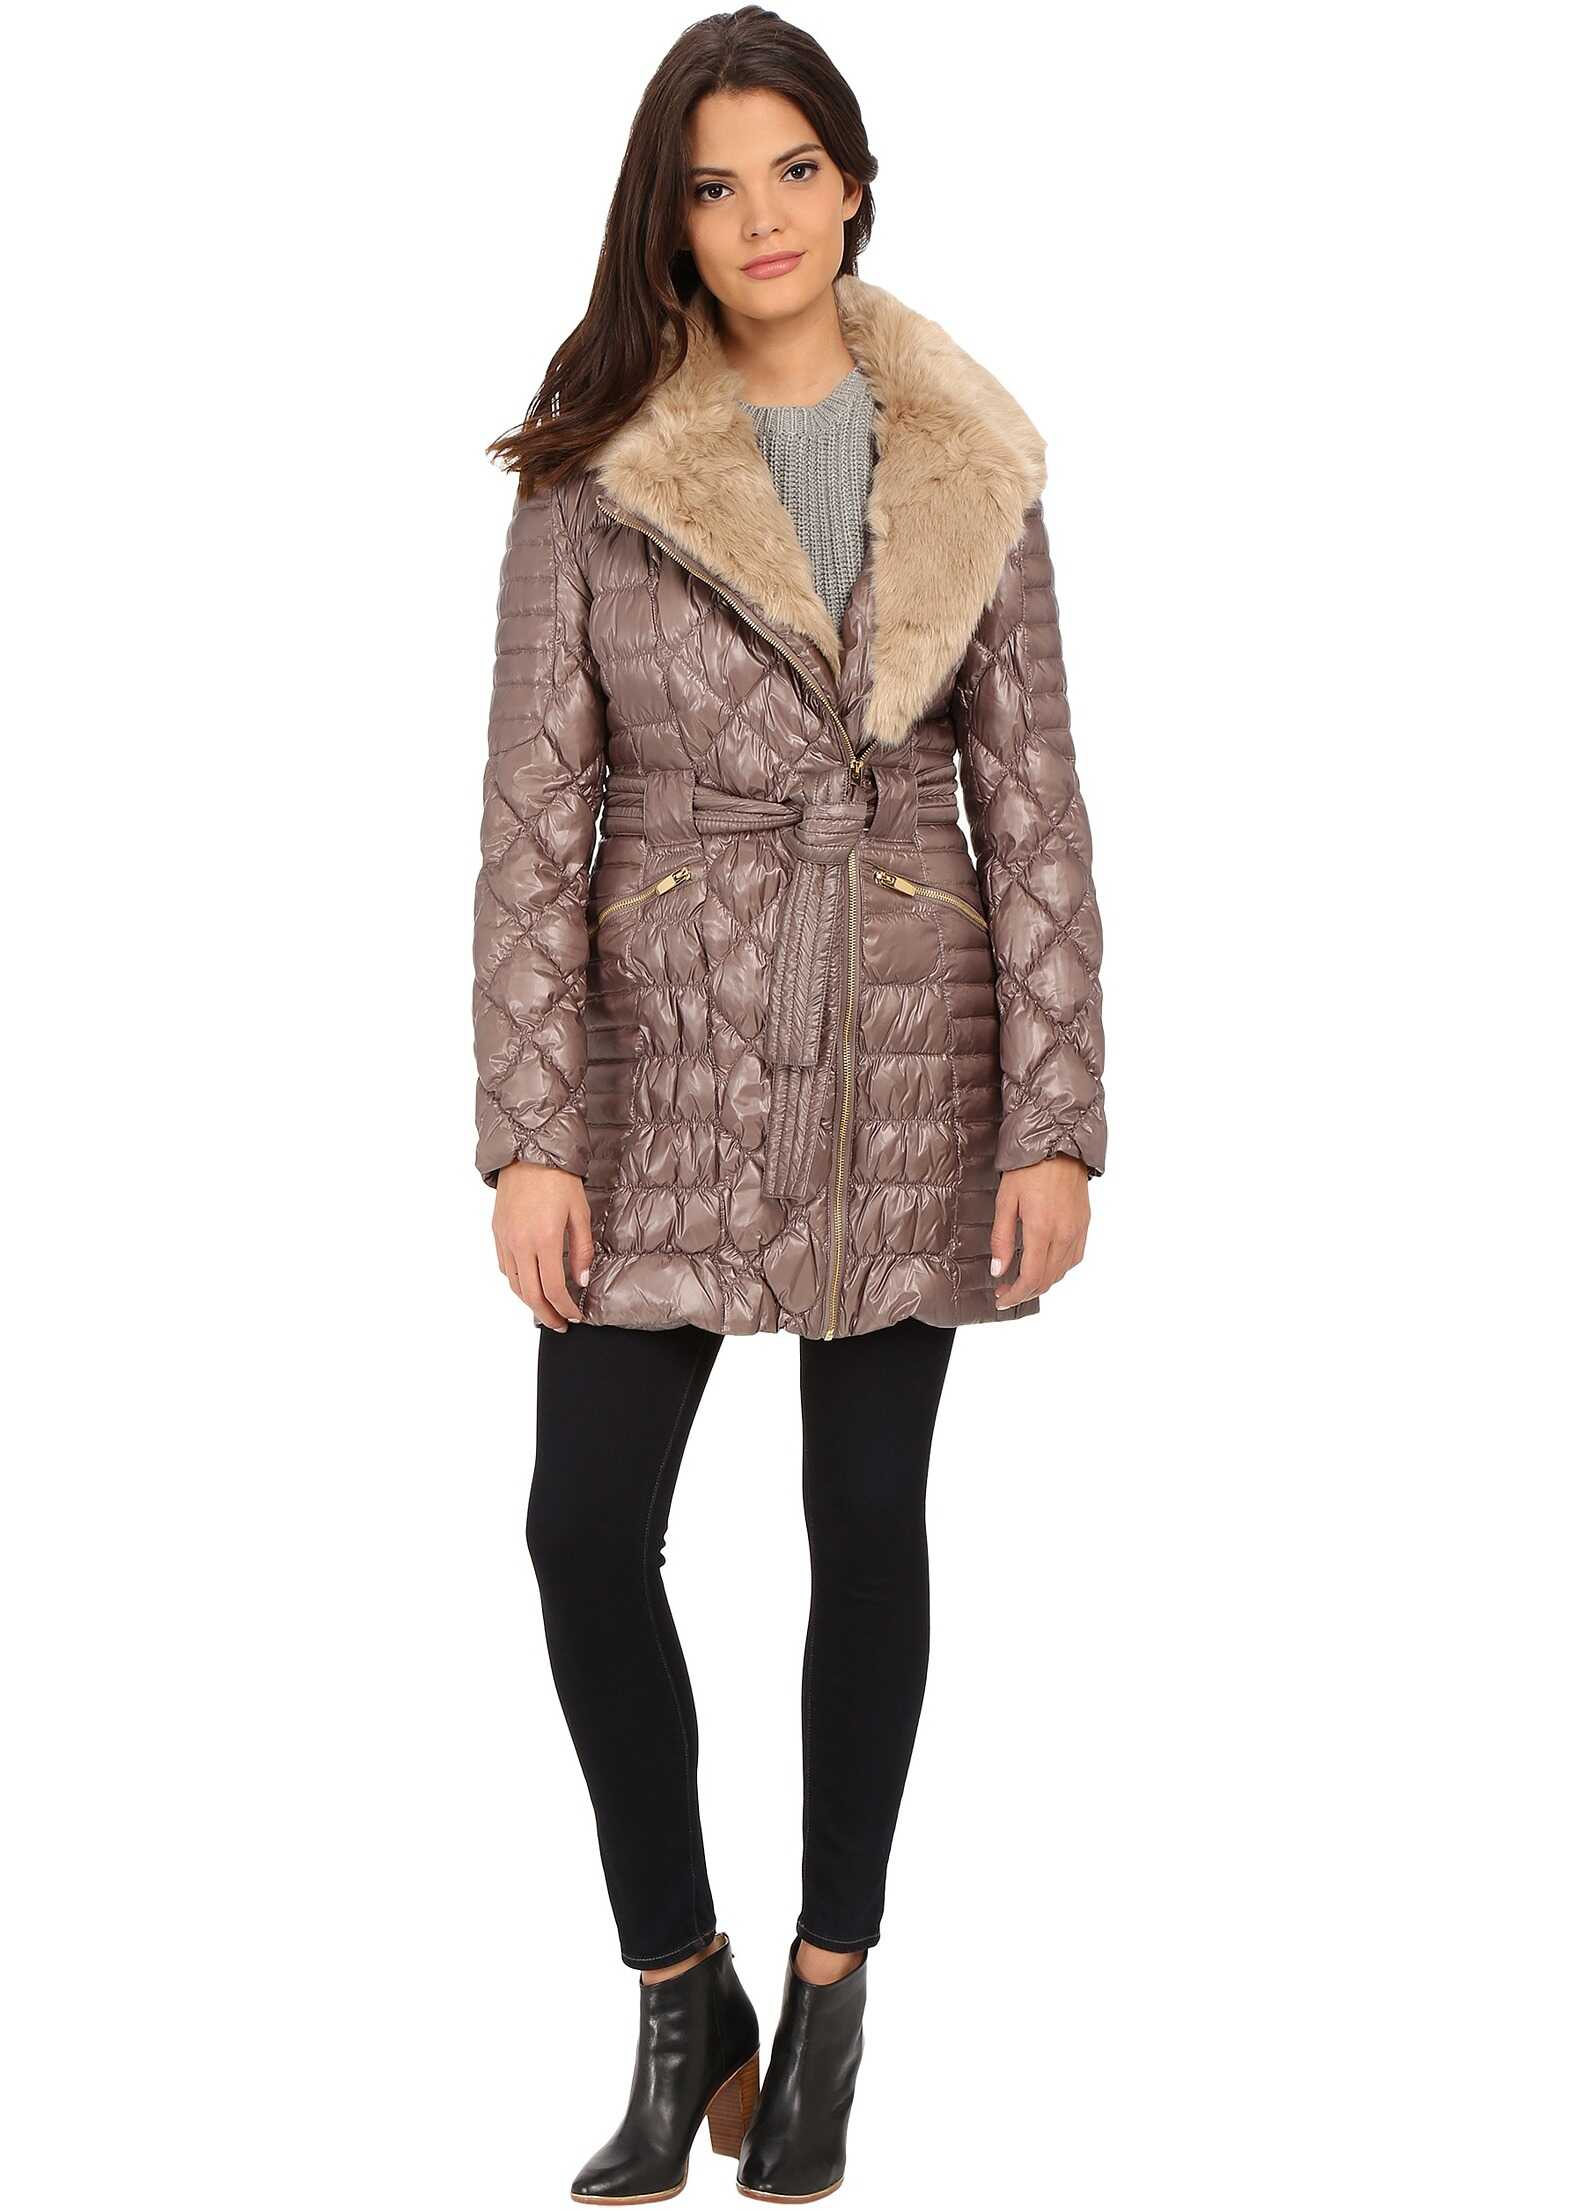 Via Spiga Kate Middleton Down Coat w/ Faux Fur Desert